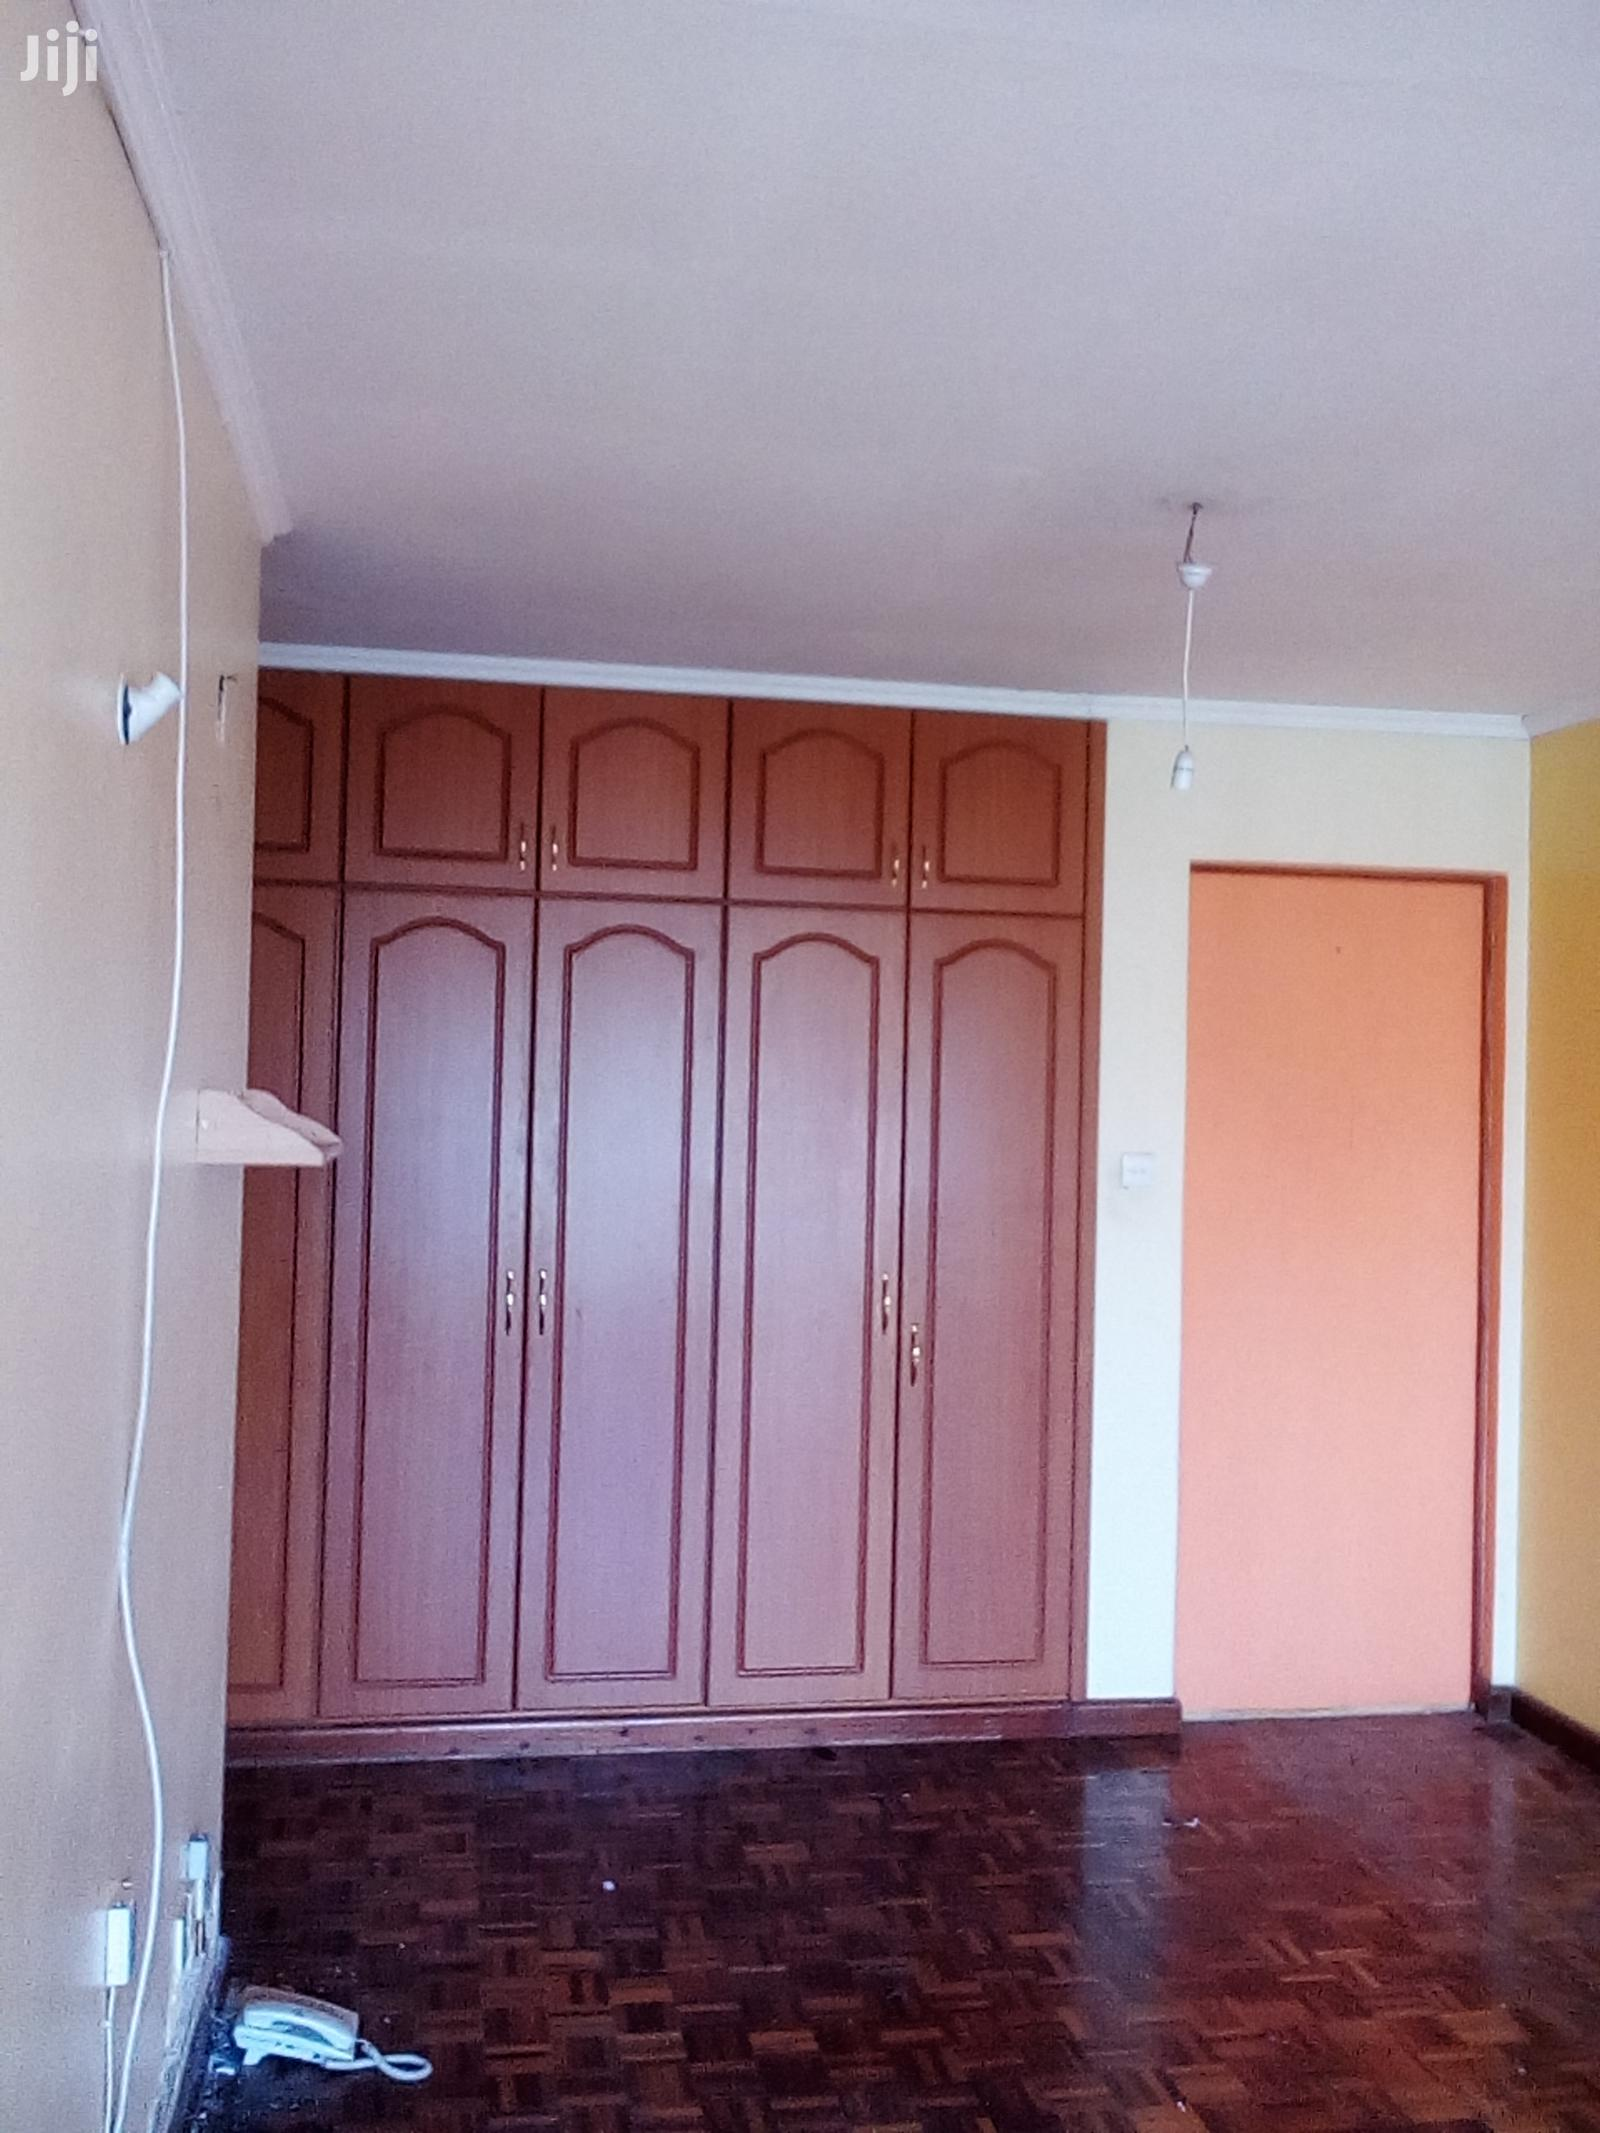 Studio in Lavington Near V- Arcade Shopping Mall to Let. | Houses & Apartments For Rent for sale in Lavington, Nairobi, Kenya